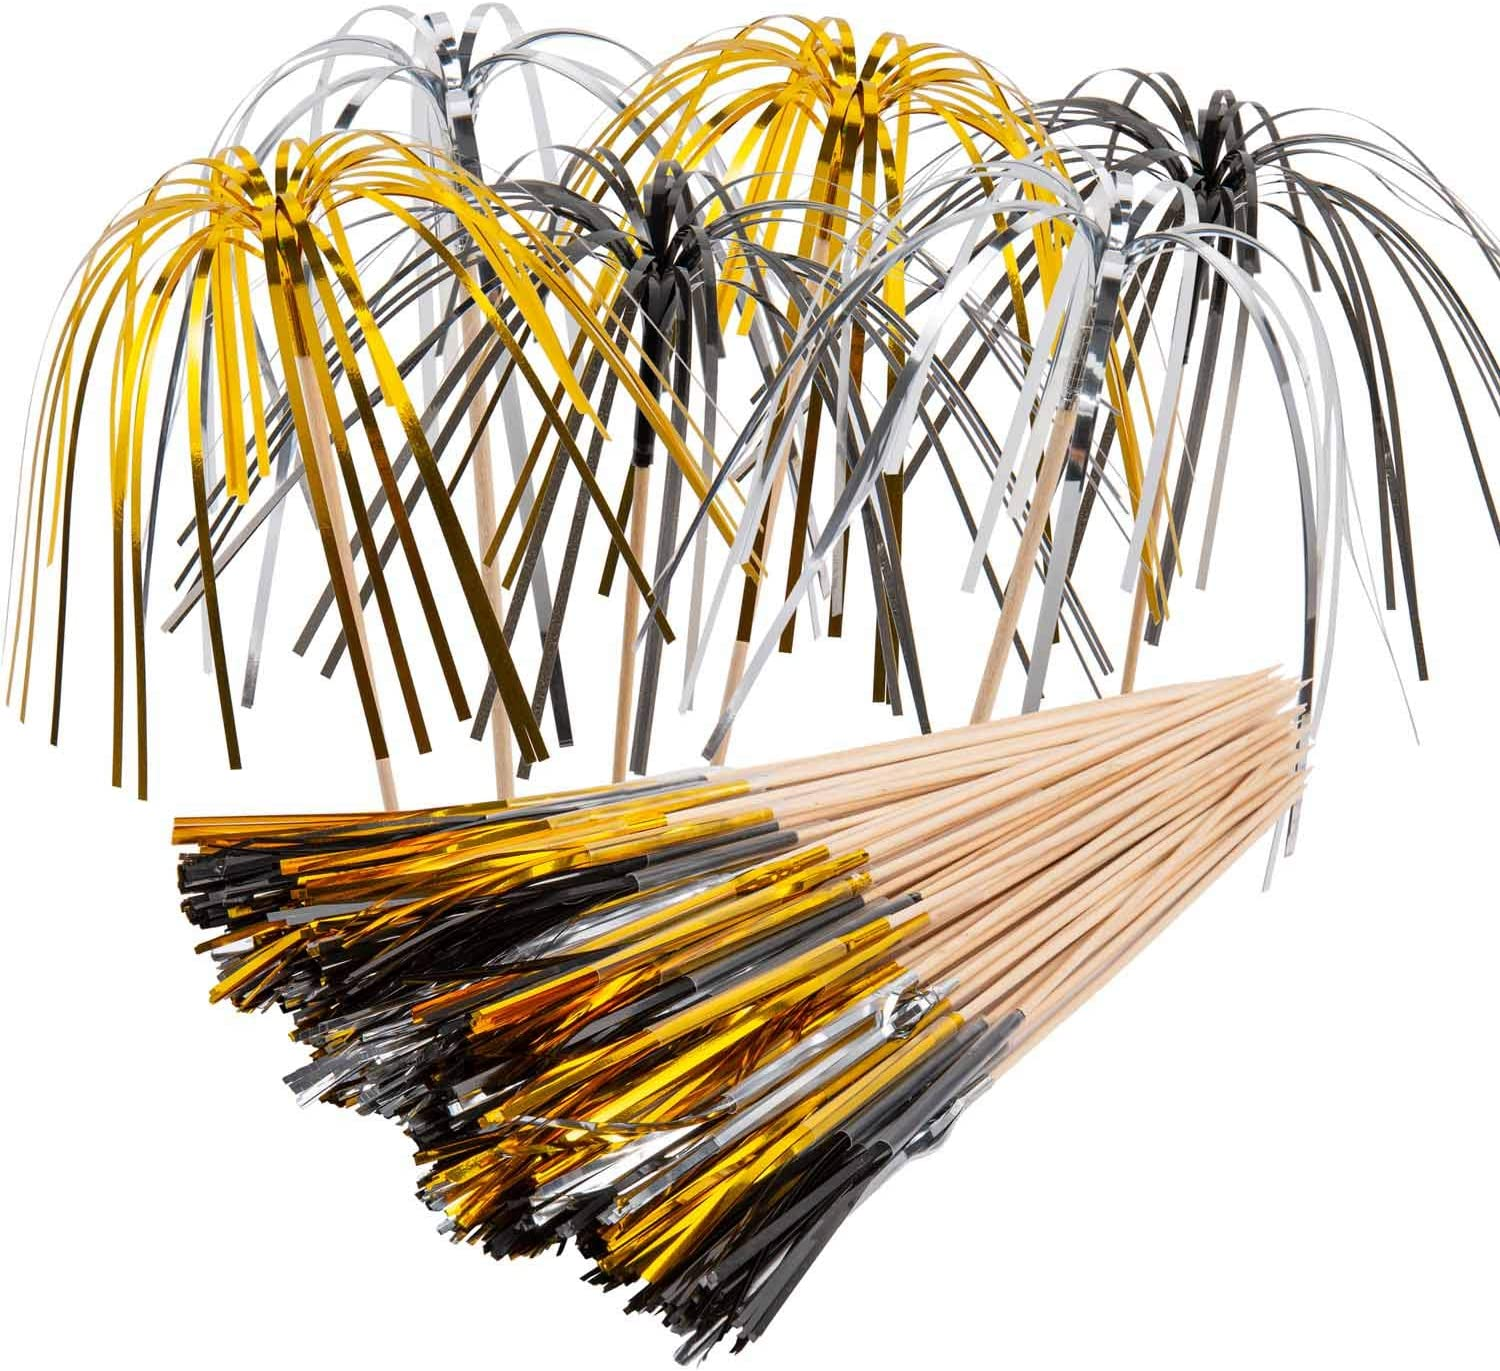 Cocktail Picks Fireworks Cupcake Picks Party Cocktail Sticks New Year Cake Toppers Sandwich Appetizer Food Sticks 9 Inch Coconut Tree for Party Decoration 100 Counts (Black,Gold,Silver)